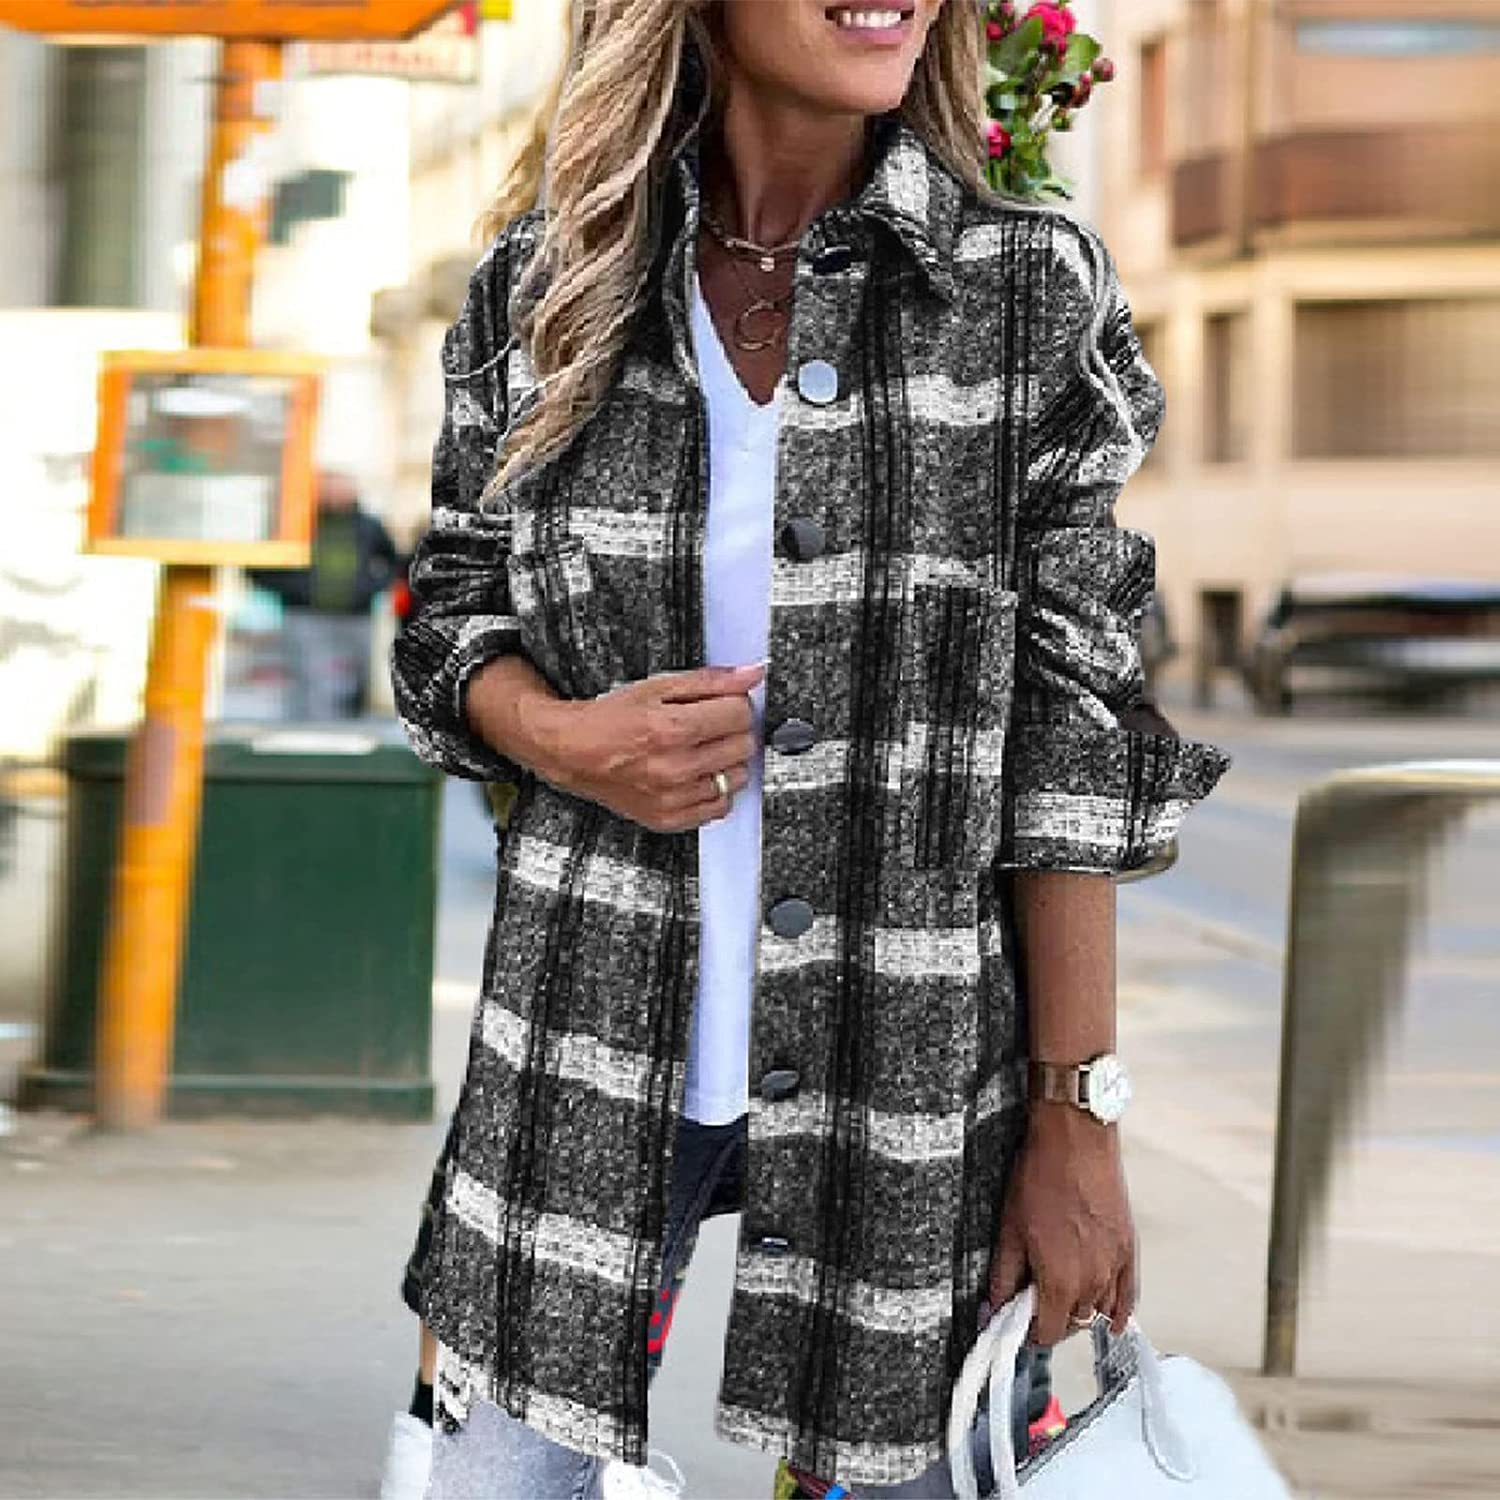 SZITOP Women's Winter Plaid Coat, Fashion Casual Loose Color Block Tops Long Sleeve Open Front Buttons Shirts Jacket Outwear